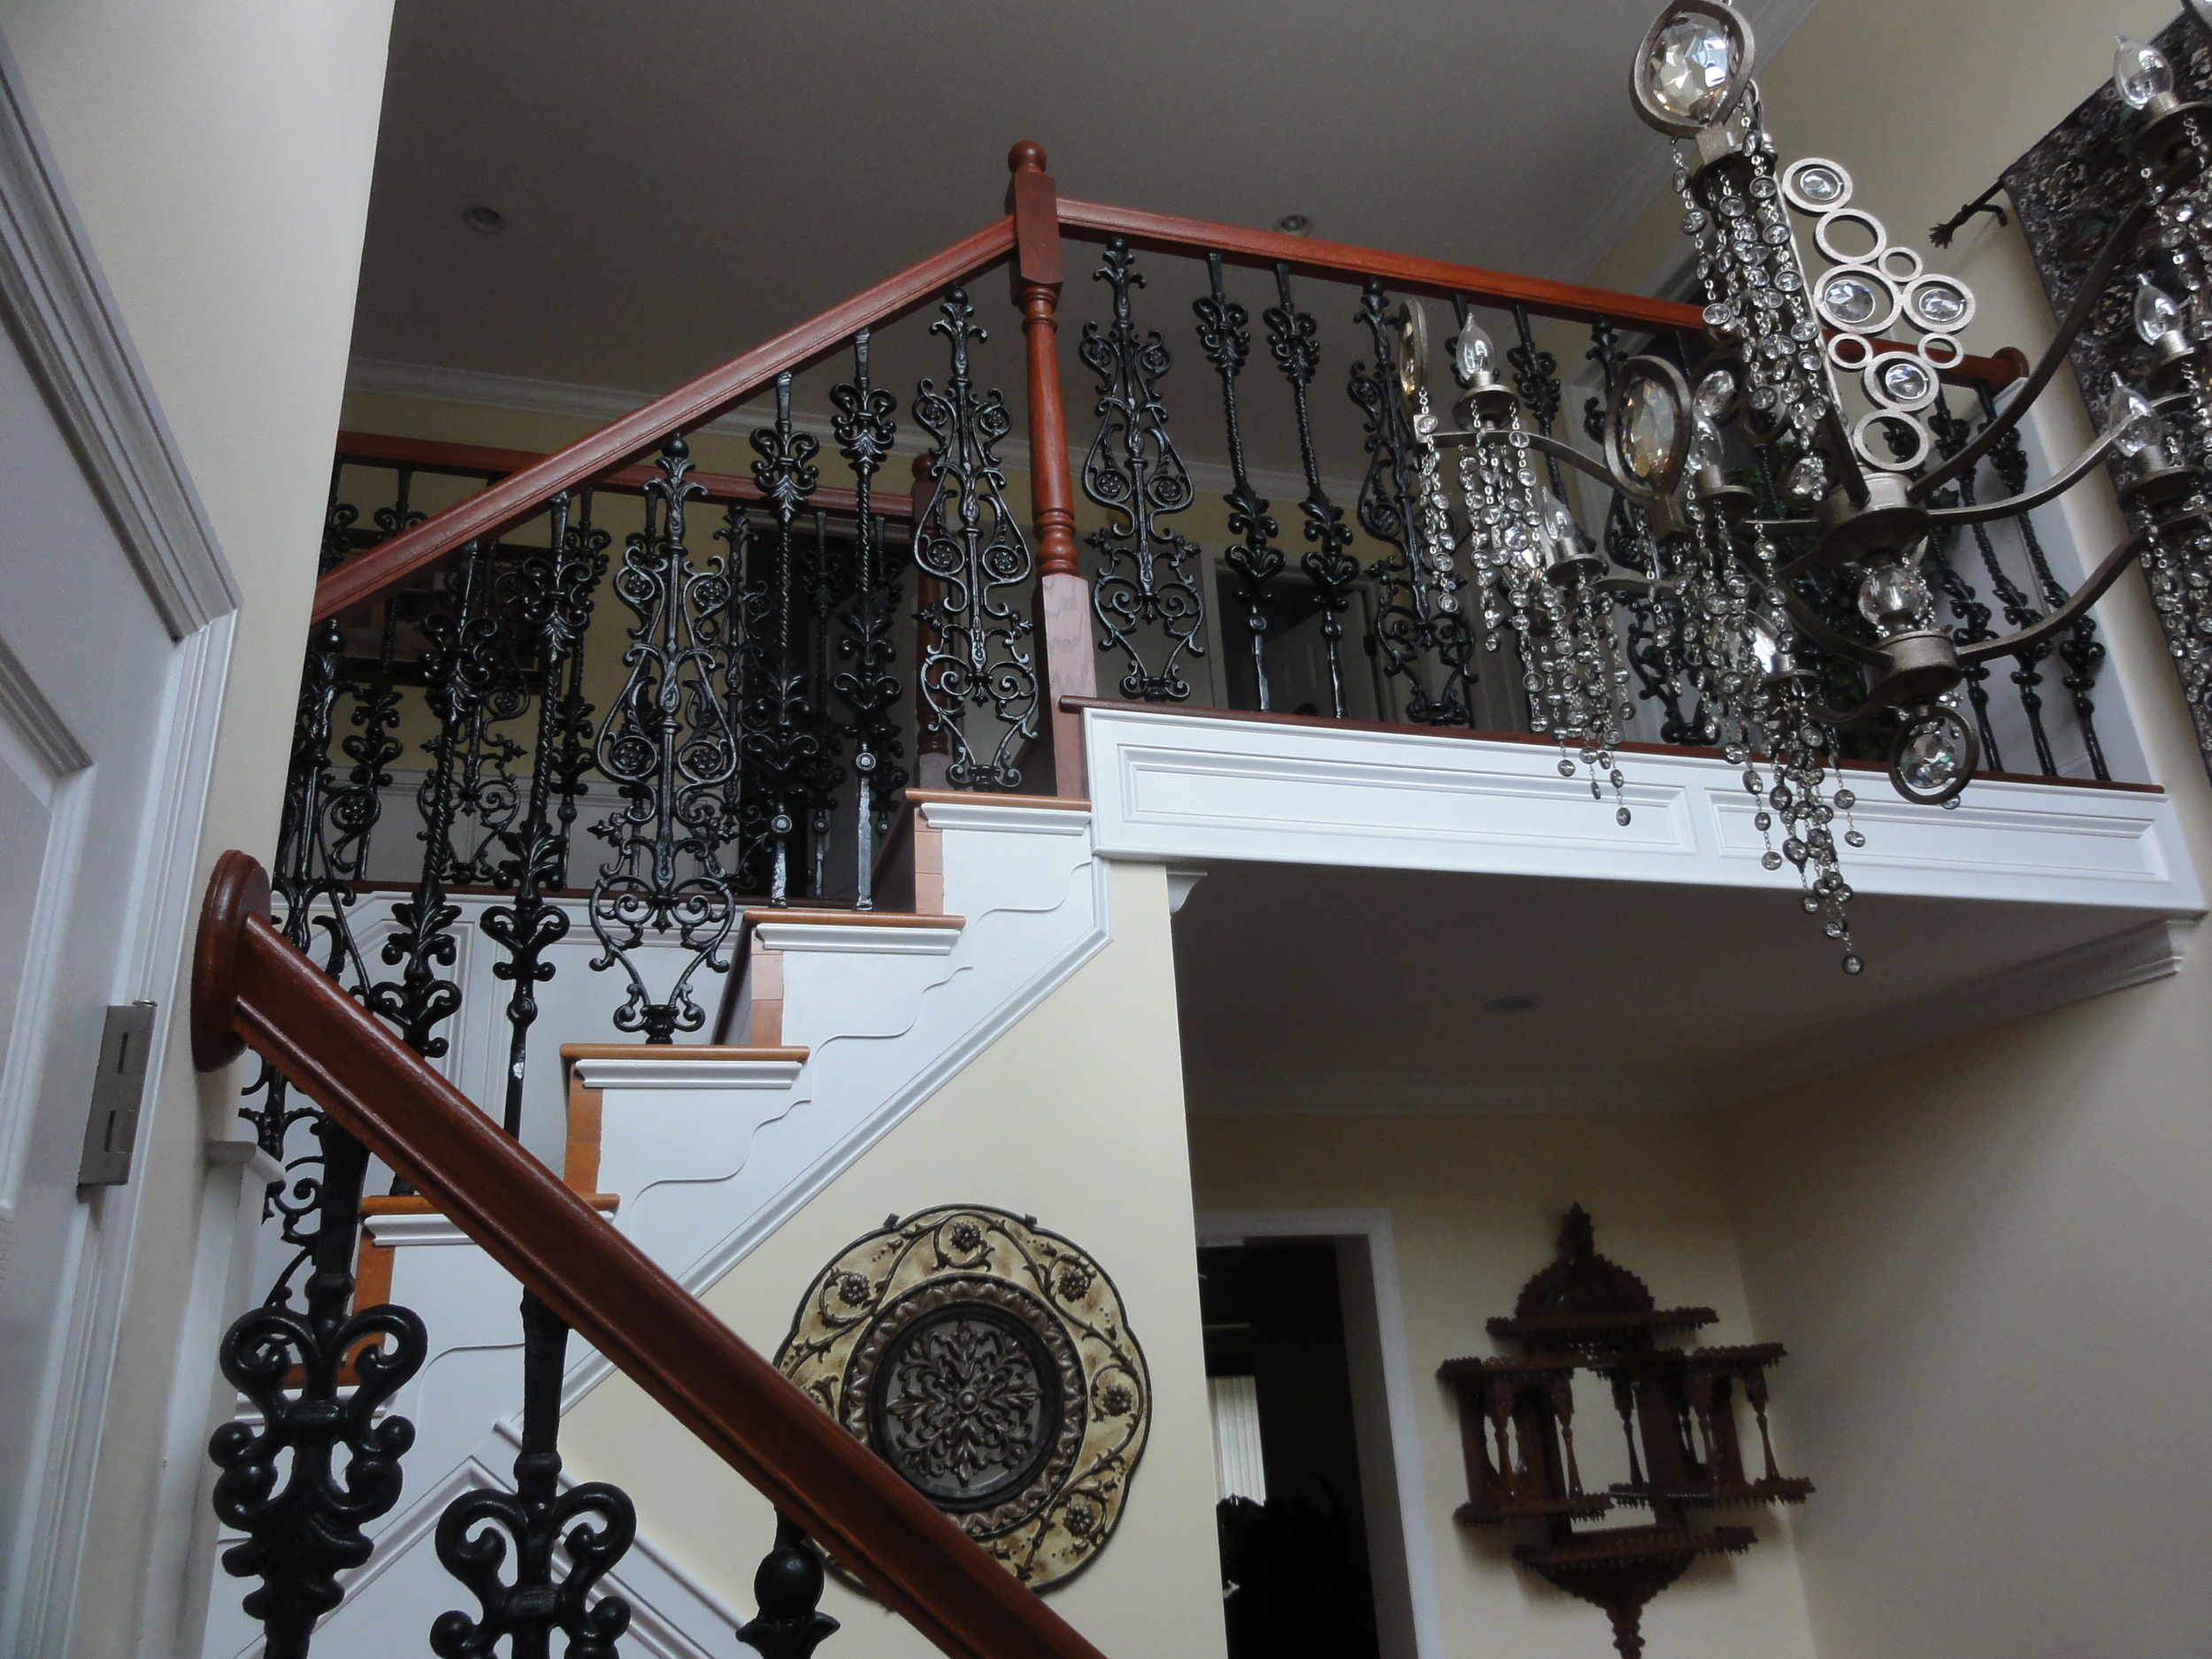 Ornamental railing with balusters